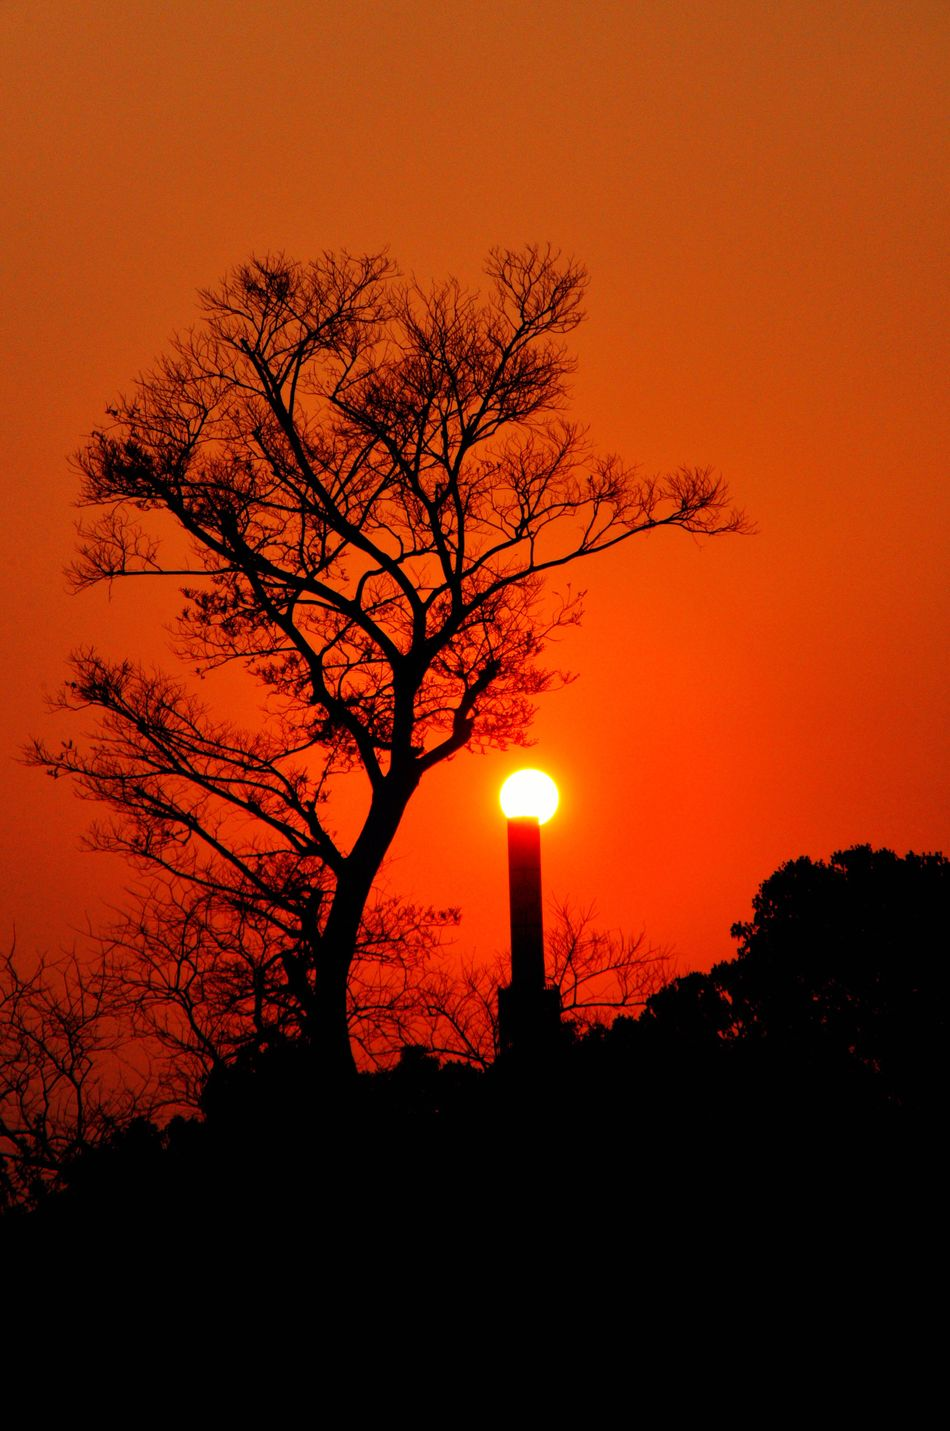 Sunset_collection Sunset✨trees✨ Colourful Nature Silhouette_collection Lamps Beautiful Nature